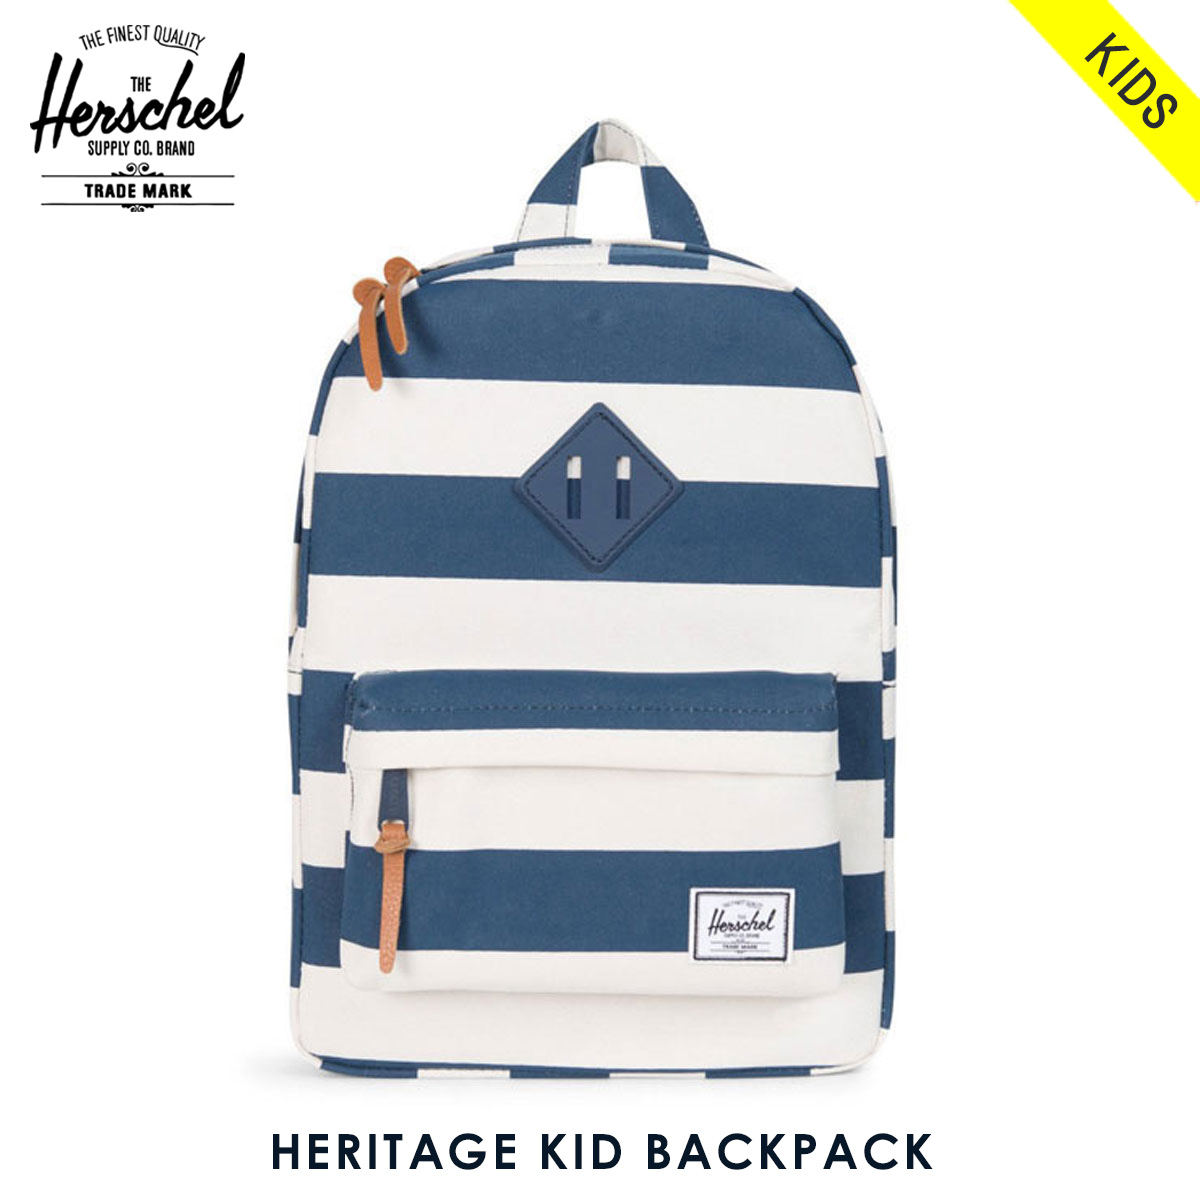 8e878ff67d8f Herschel supply Herschel Supply regular sale shop bag rucksack BACKPACK KID  10073-01213-OS HERITAGE NAVY NATURAL STRIPE NAVY RUBBER 20P03Dec16